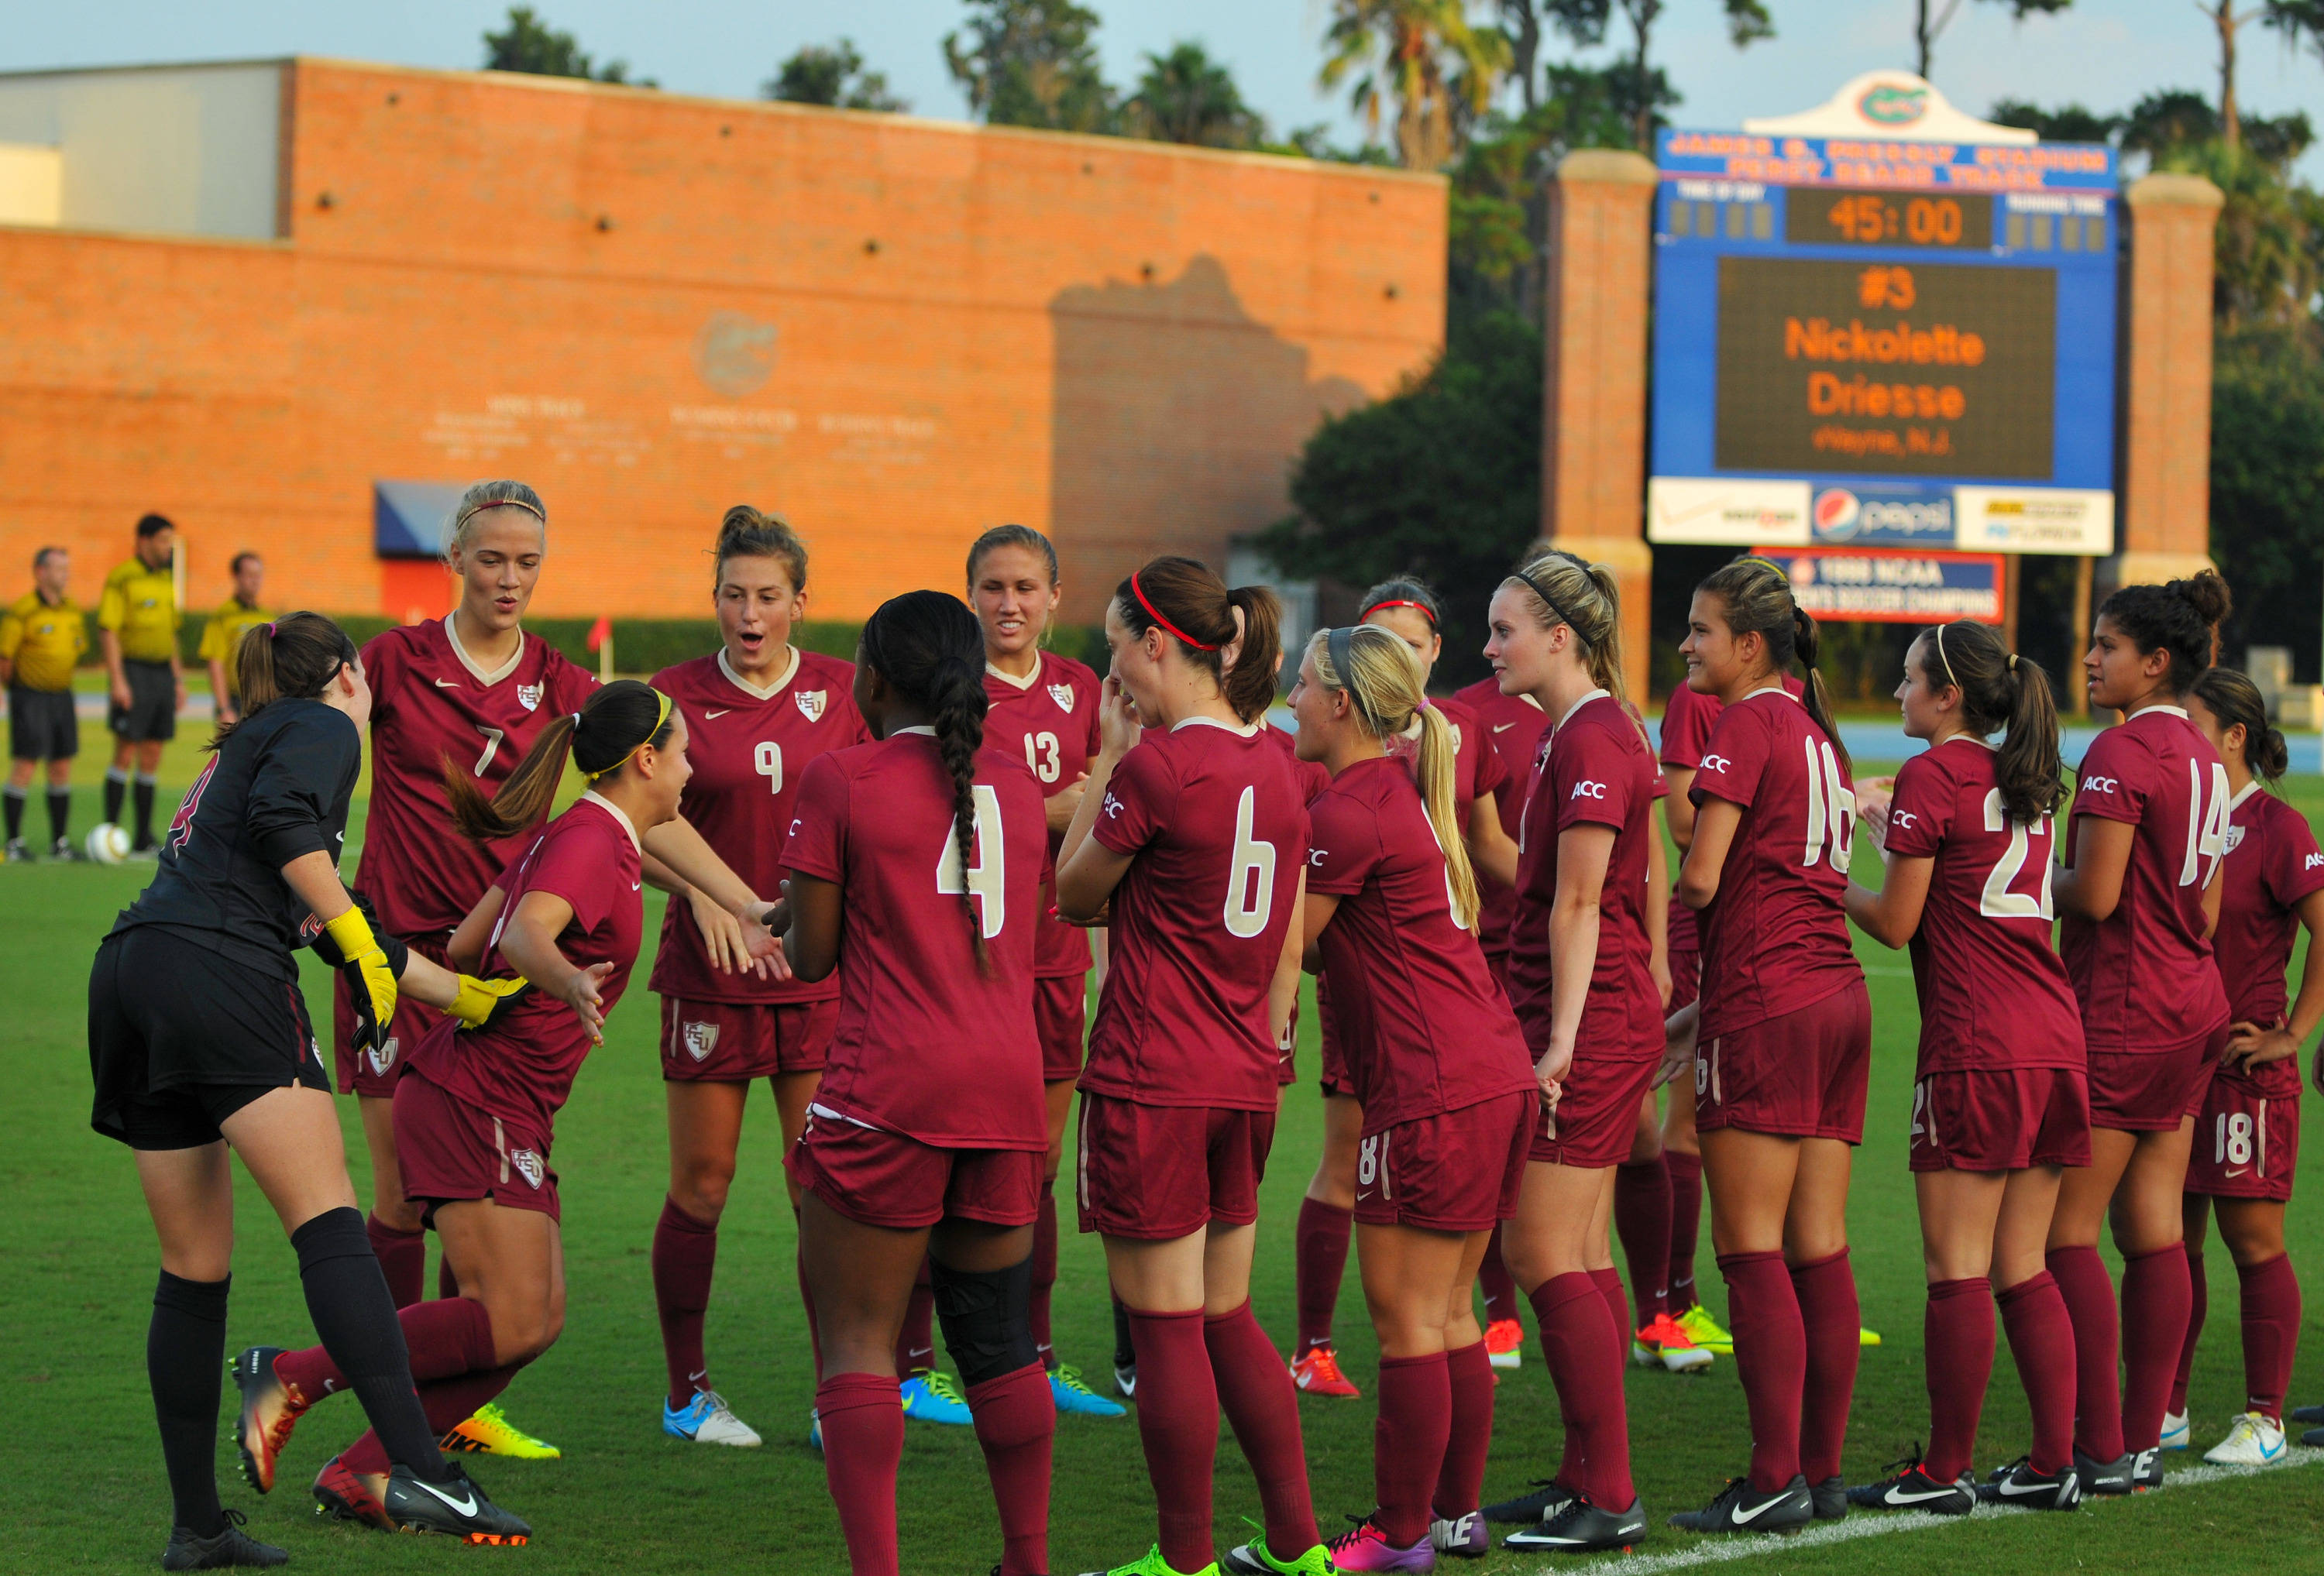 The Seminoles during Friday night's starting line-ups.